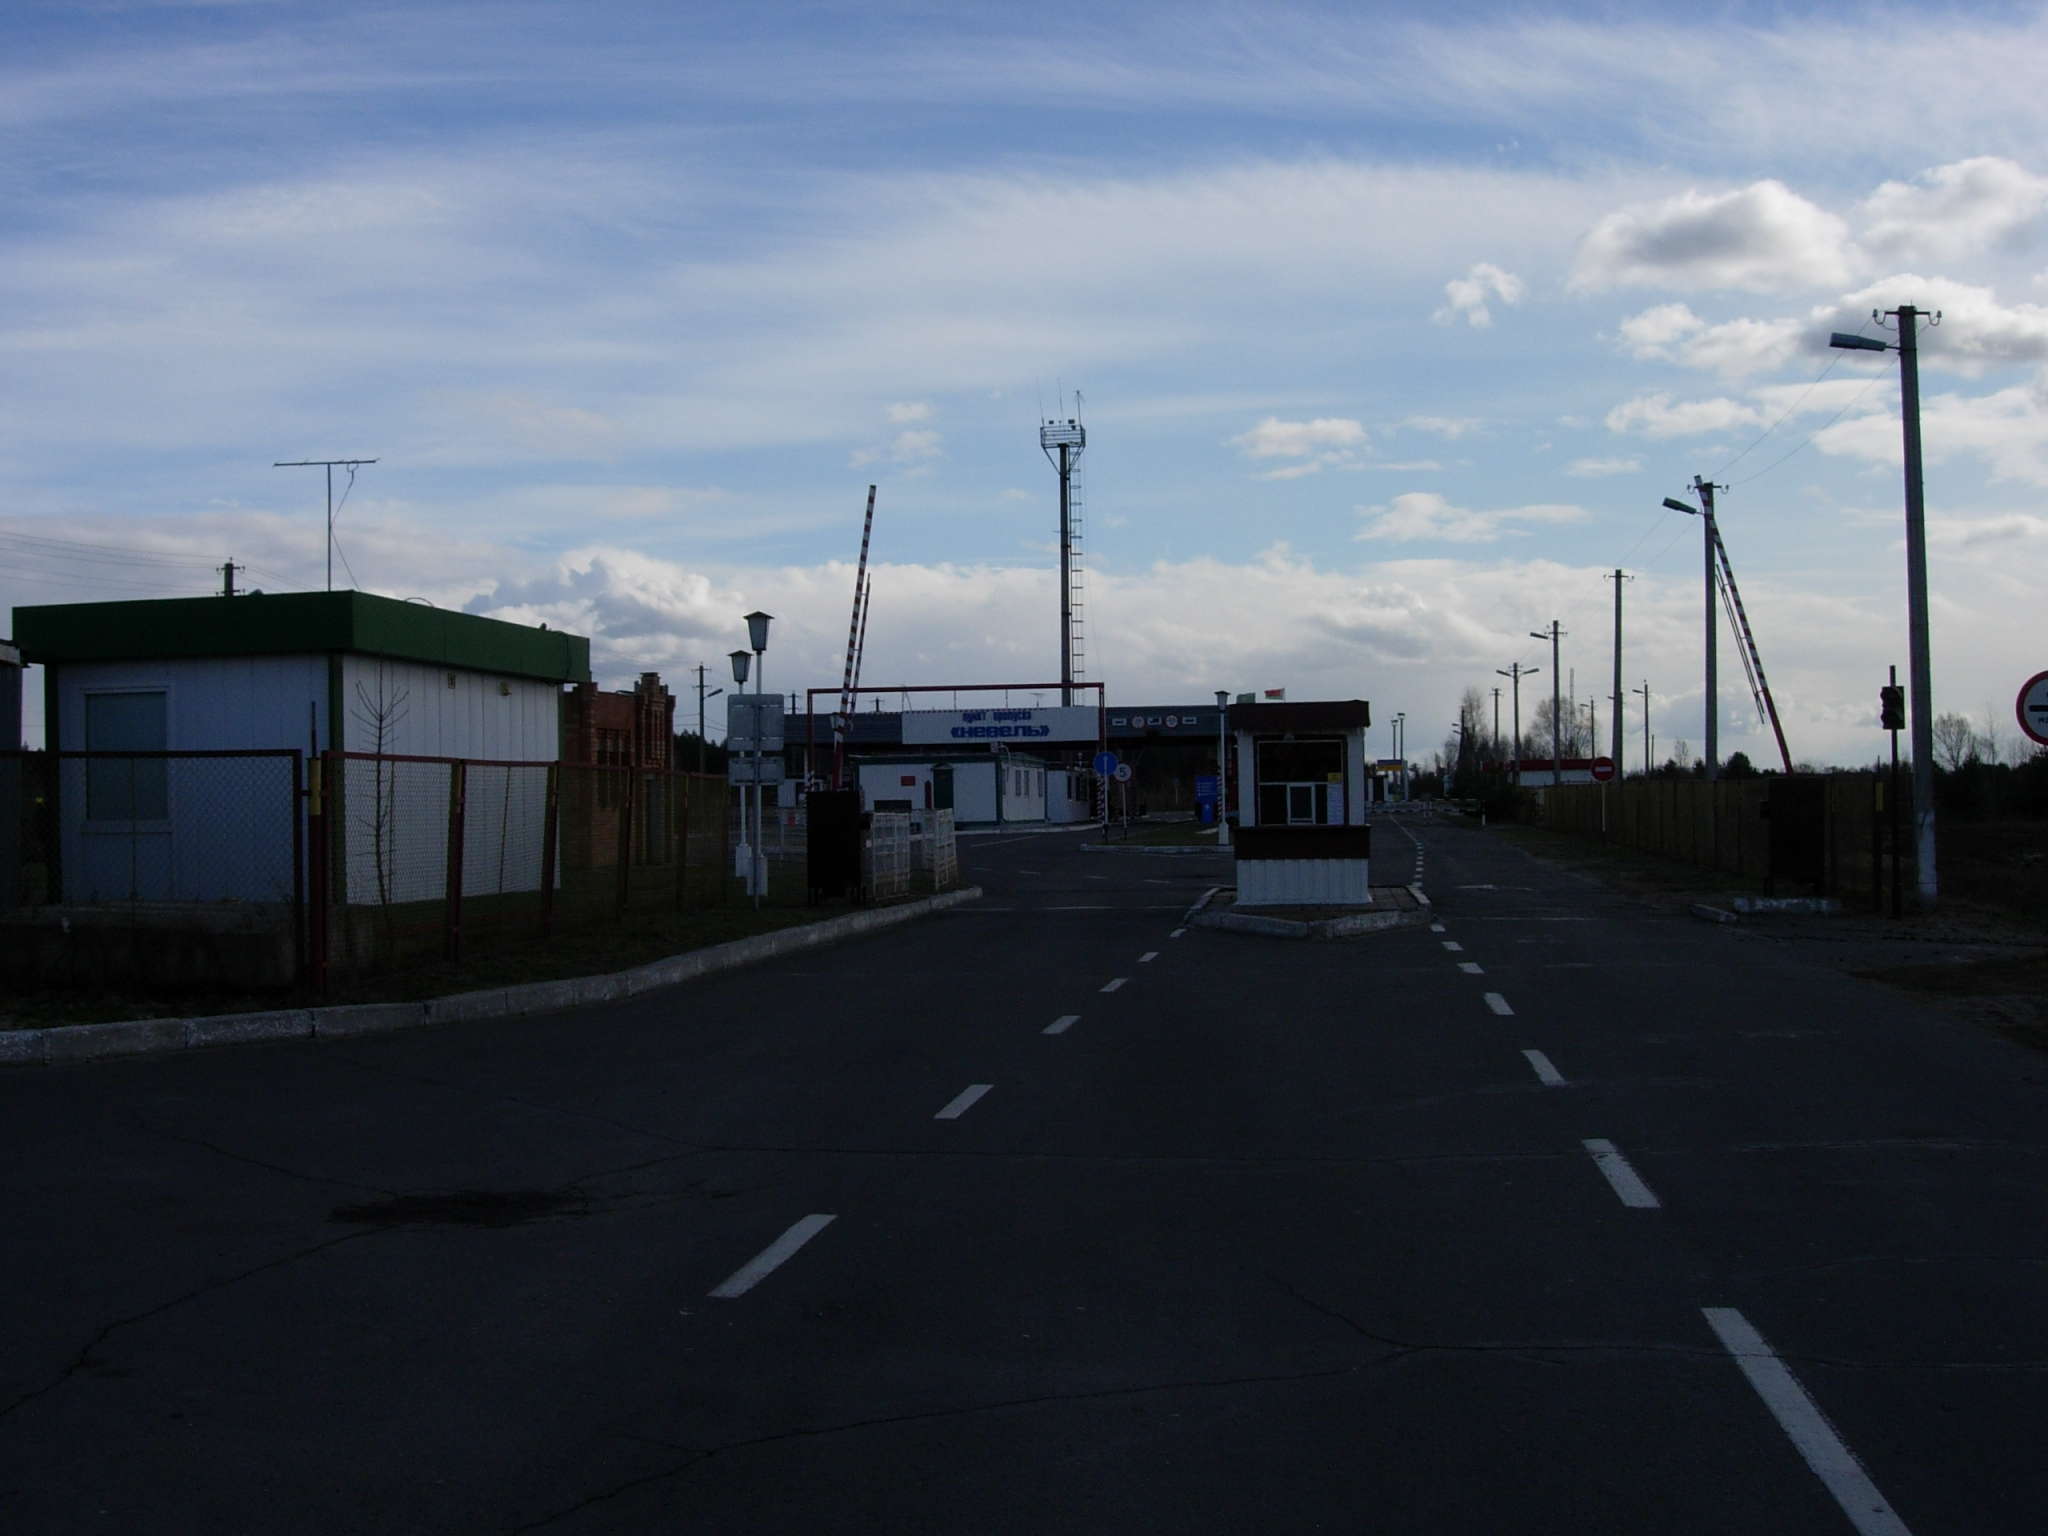 File:Check point «Nevel», Belarus, at state-line with